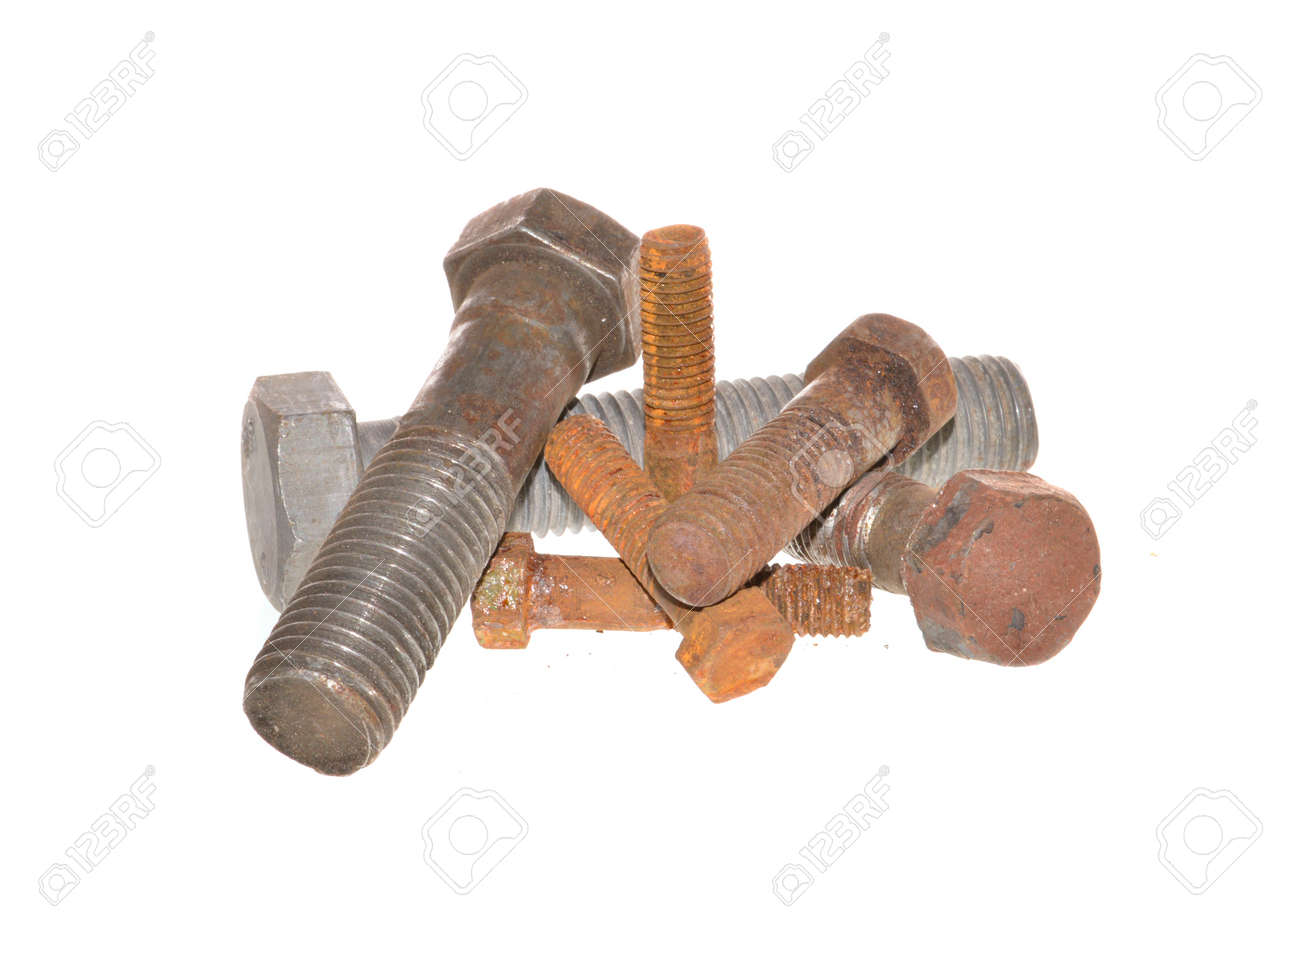 rusty bolt isolated on white background - 171898175